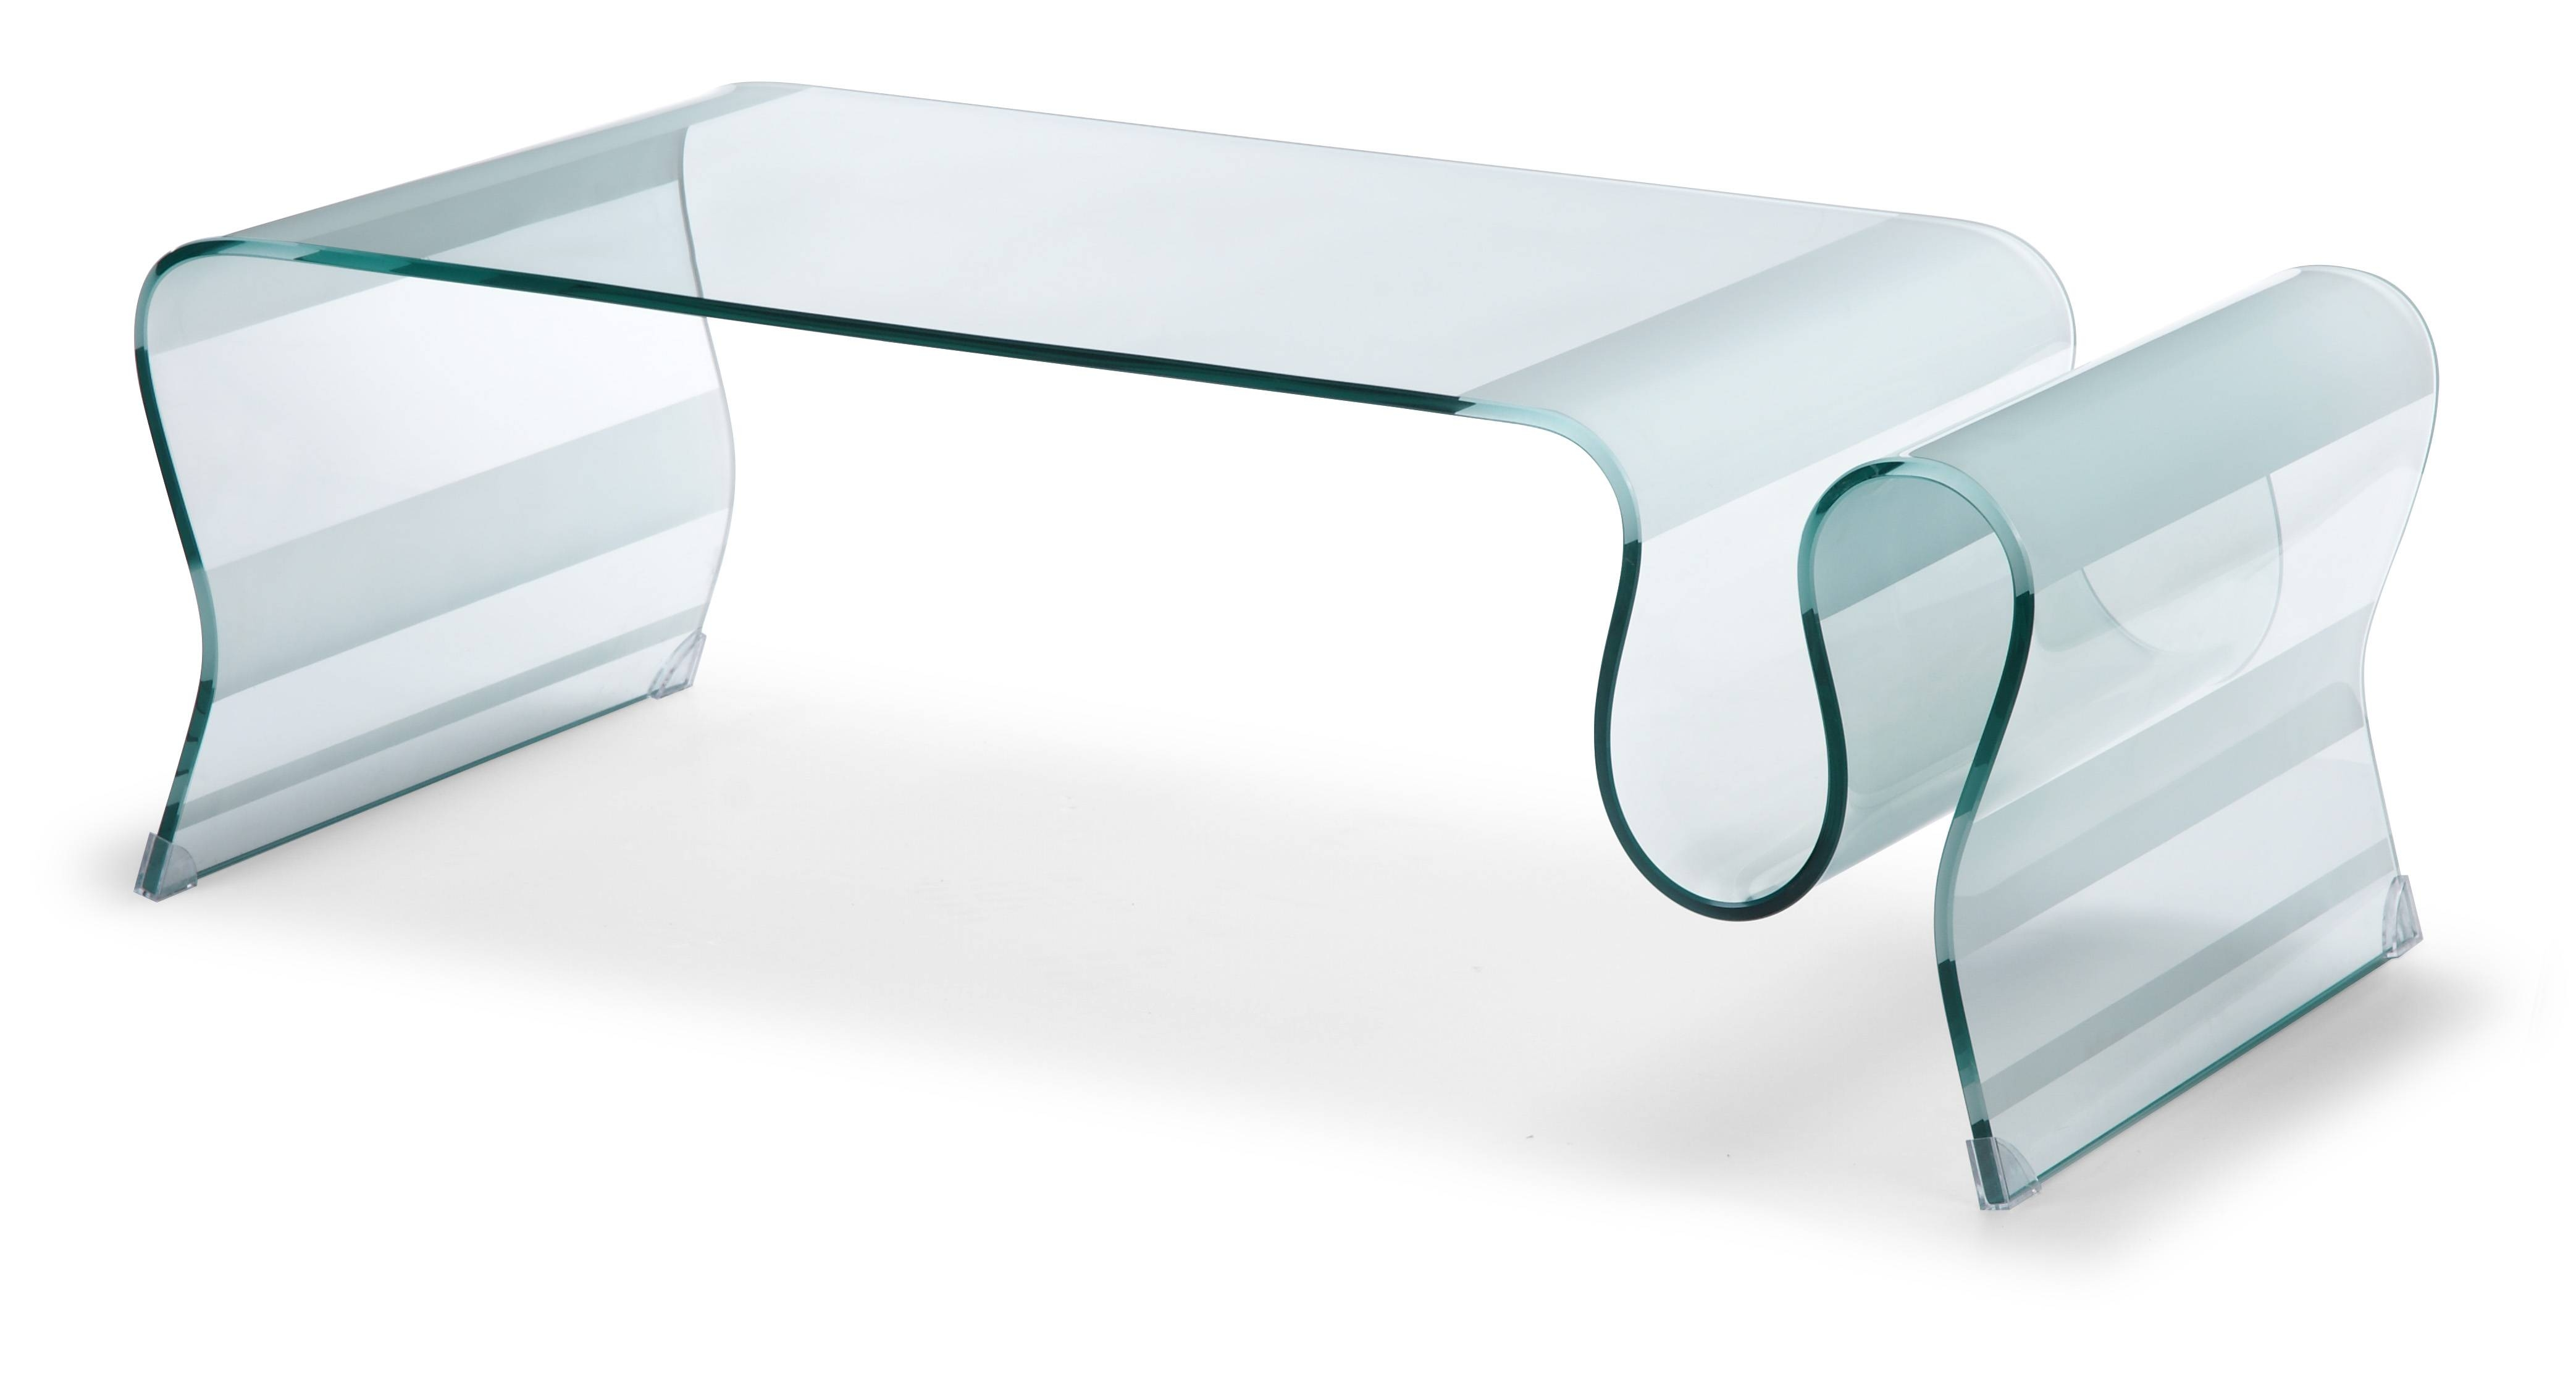 Luxury Nice Glass Coffee Tables 71 For With Nice Glass Coffee Inside Transparent Glass Coffee Tables (Image 22 of 30)